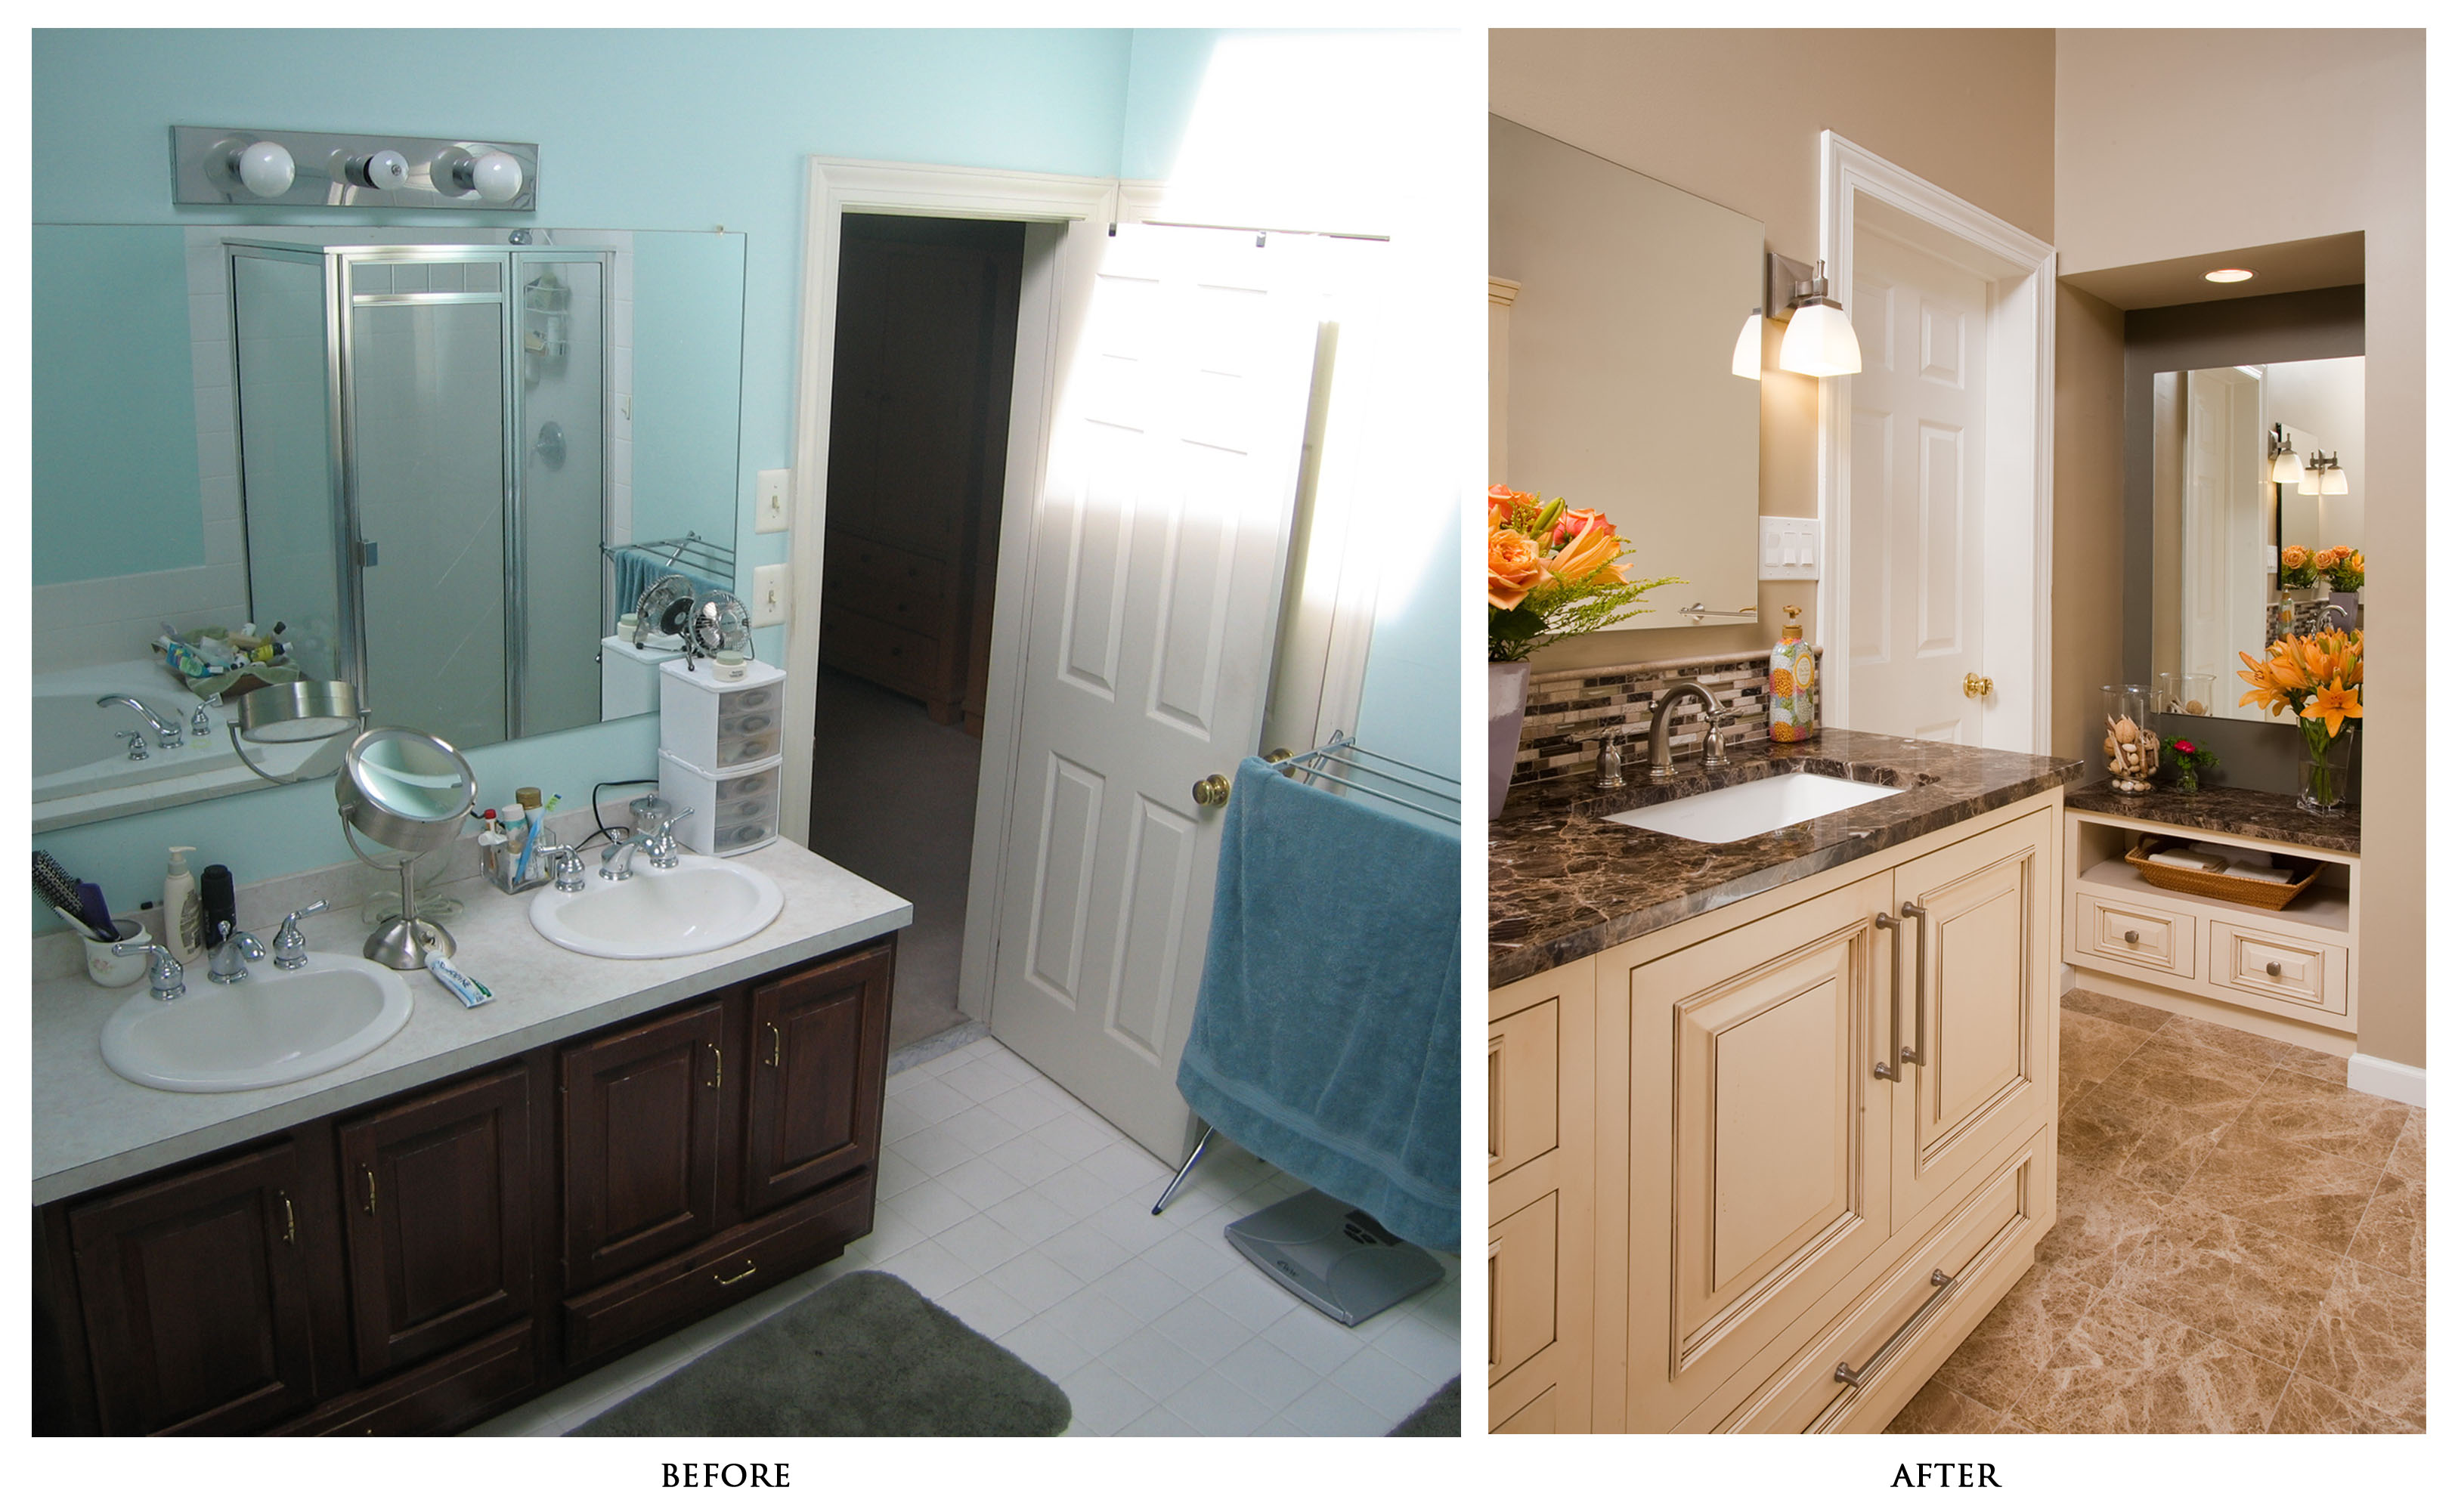 Before And After Diy Bathroom Renovation Ideas Marvelous Diy Bathroom Remodel Photos Design